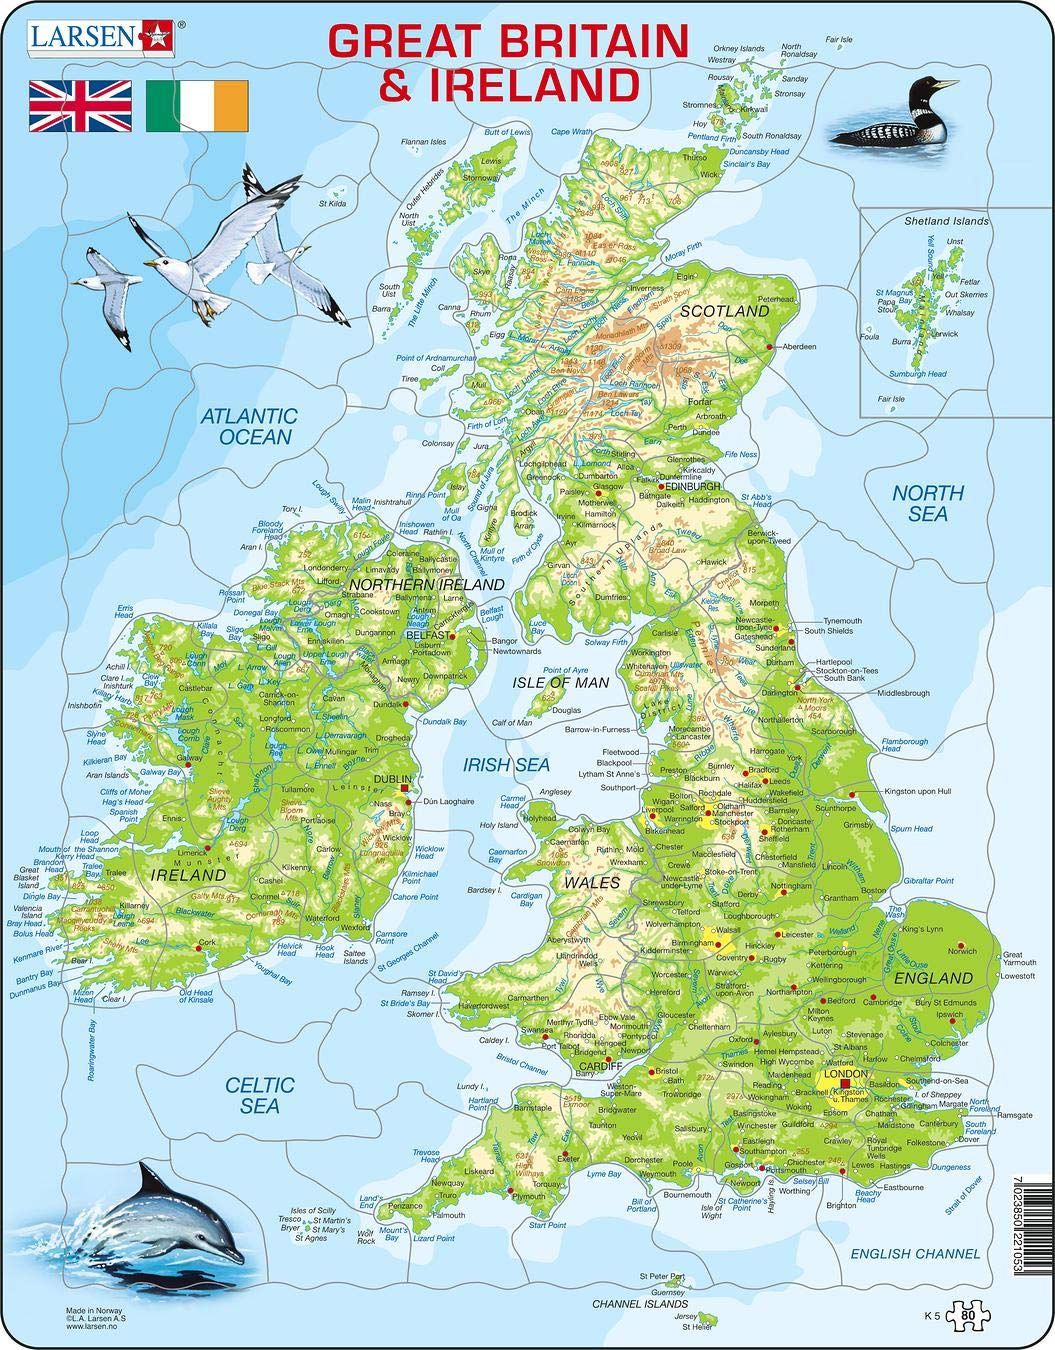 High Quality Map Of Ireland.Larsen K5 Great Britain Ireland Physical Map Jigsaw Puzzle With 80 Pieces English Edition